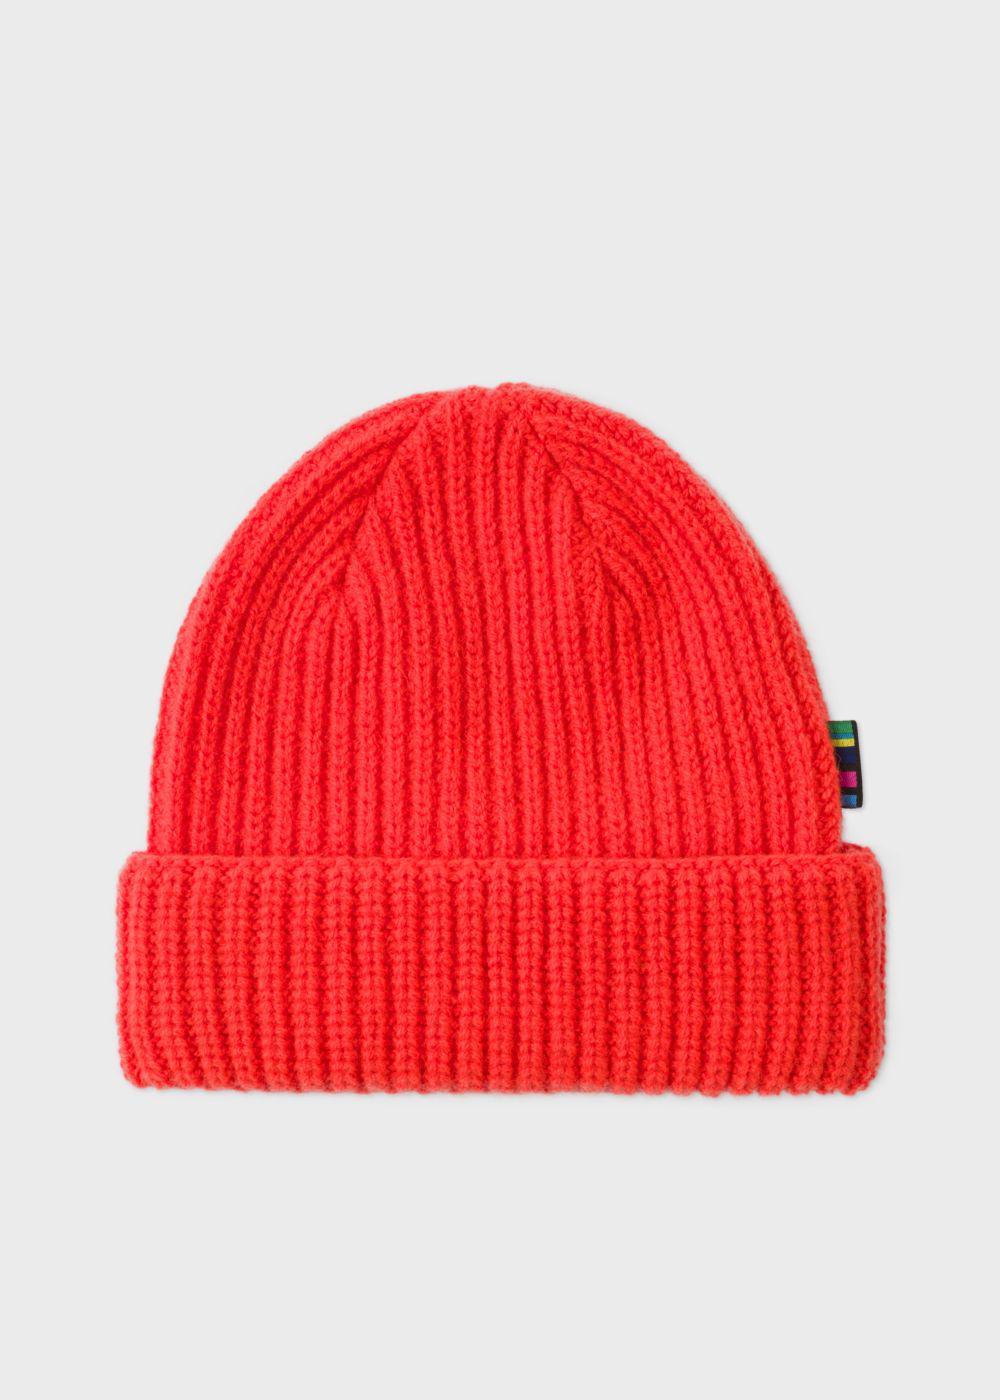 be9b1418d00 Lyst - Paul Smith Men s Neon Red Wool Beanie Hat in Red for Men